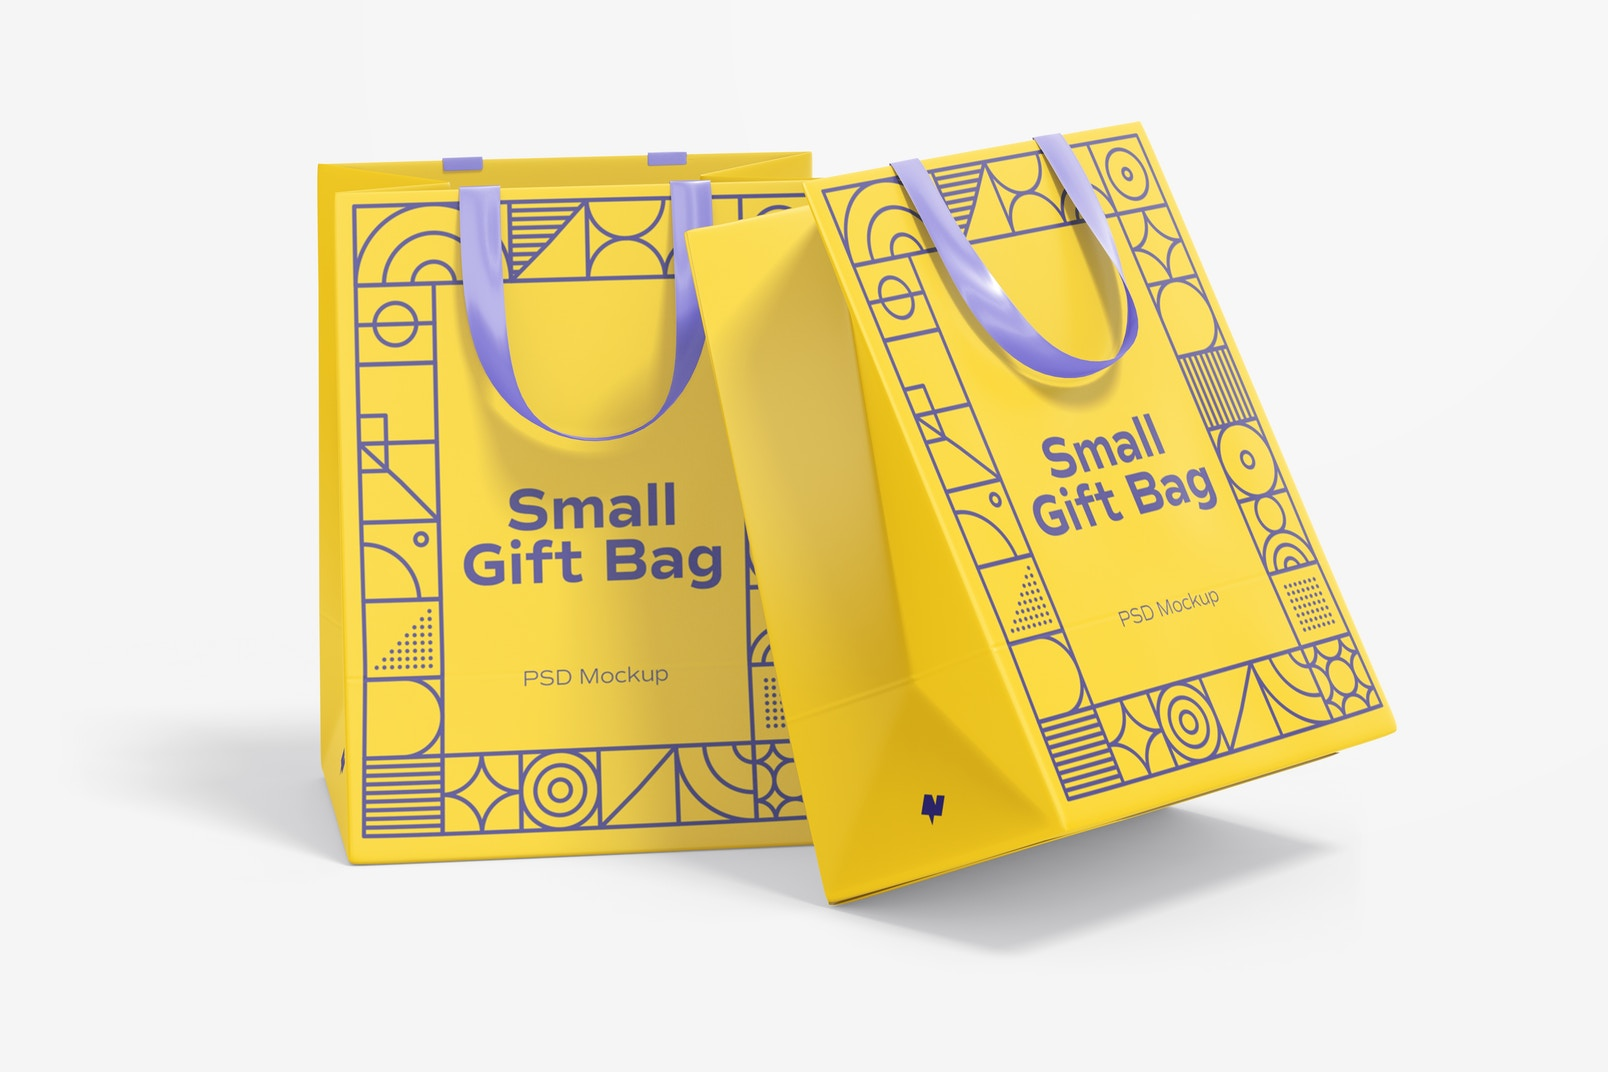 Small Gift Bags with Ribbon Handle Mockup, Perspective